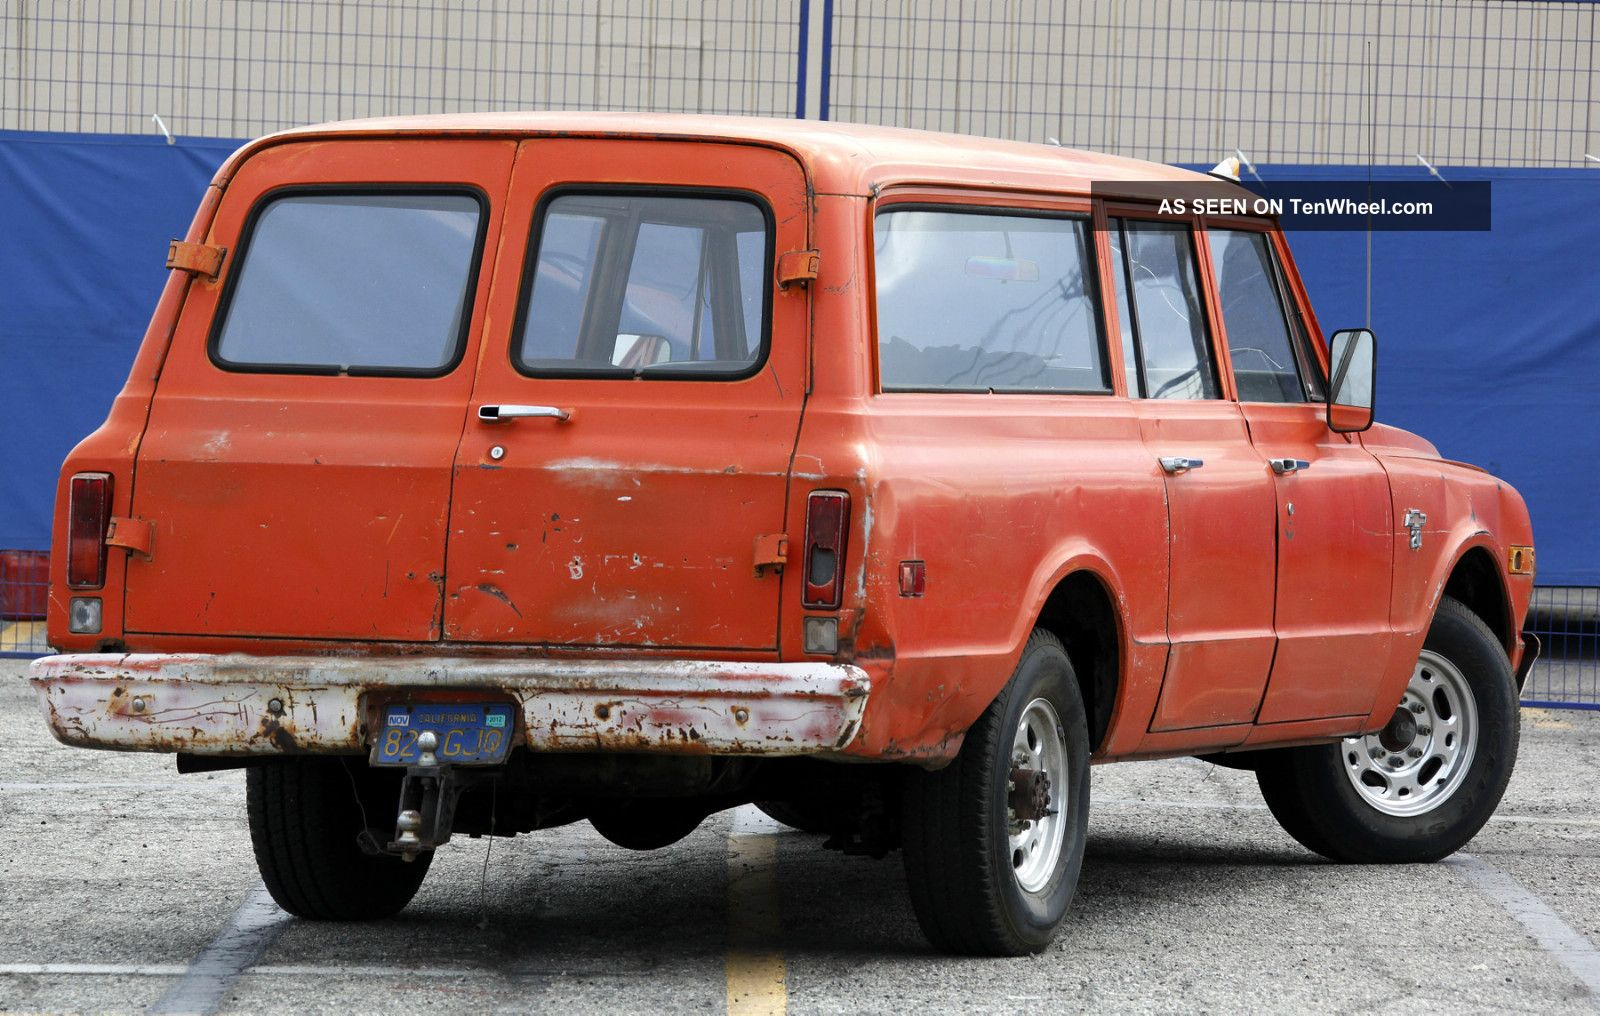 Chevrolet Suburban Dr Z Wd Suv Pic besides Chevrolet Suburban Pic as well Chevrolet Suburban Dr Lt Wd Suv Pic further Chevrolet Suburban Dr Lt Suv Pic furthermore Chevrolet Suburban Dr Lt Wd Suv Pic. on 1968 chevy suburban specs